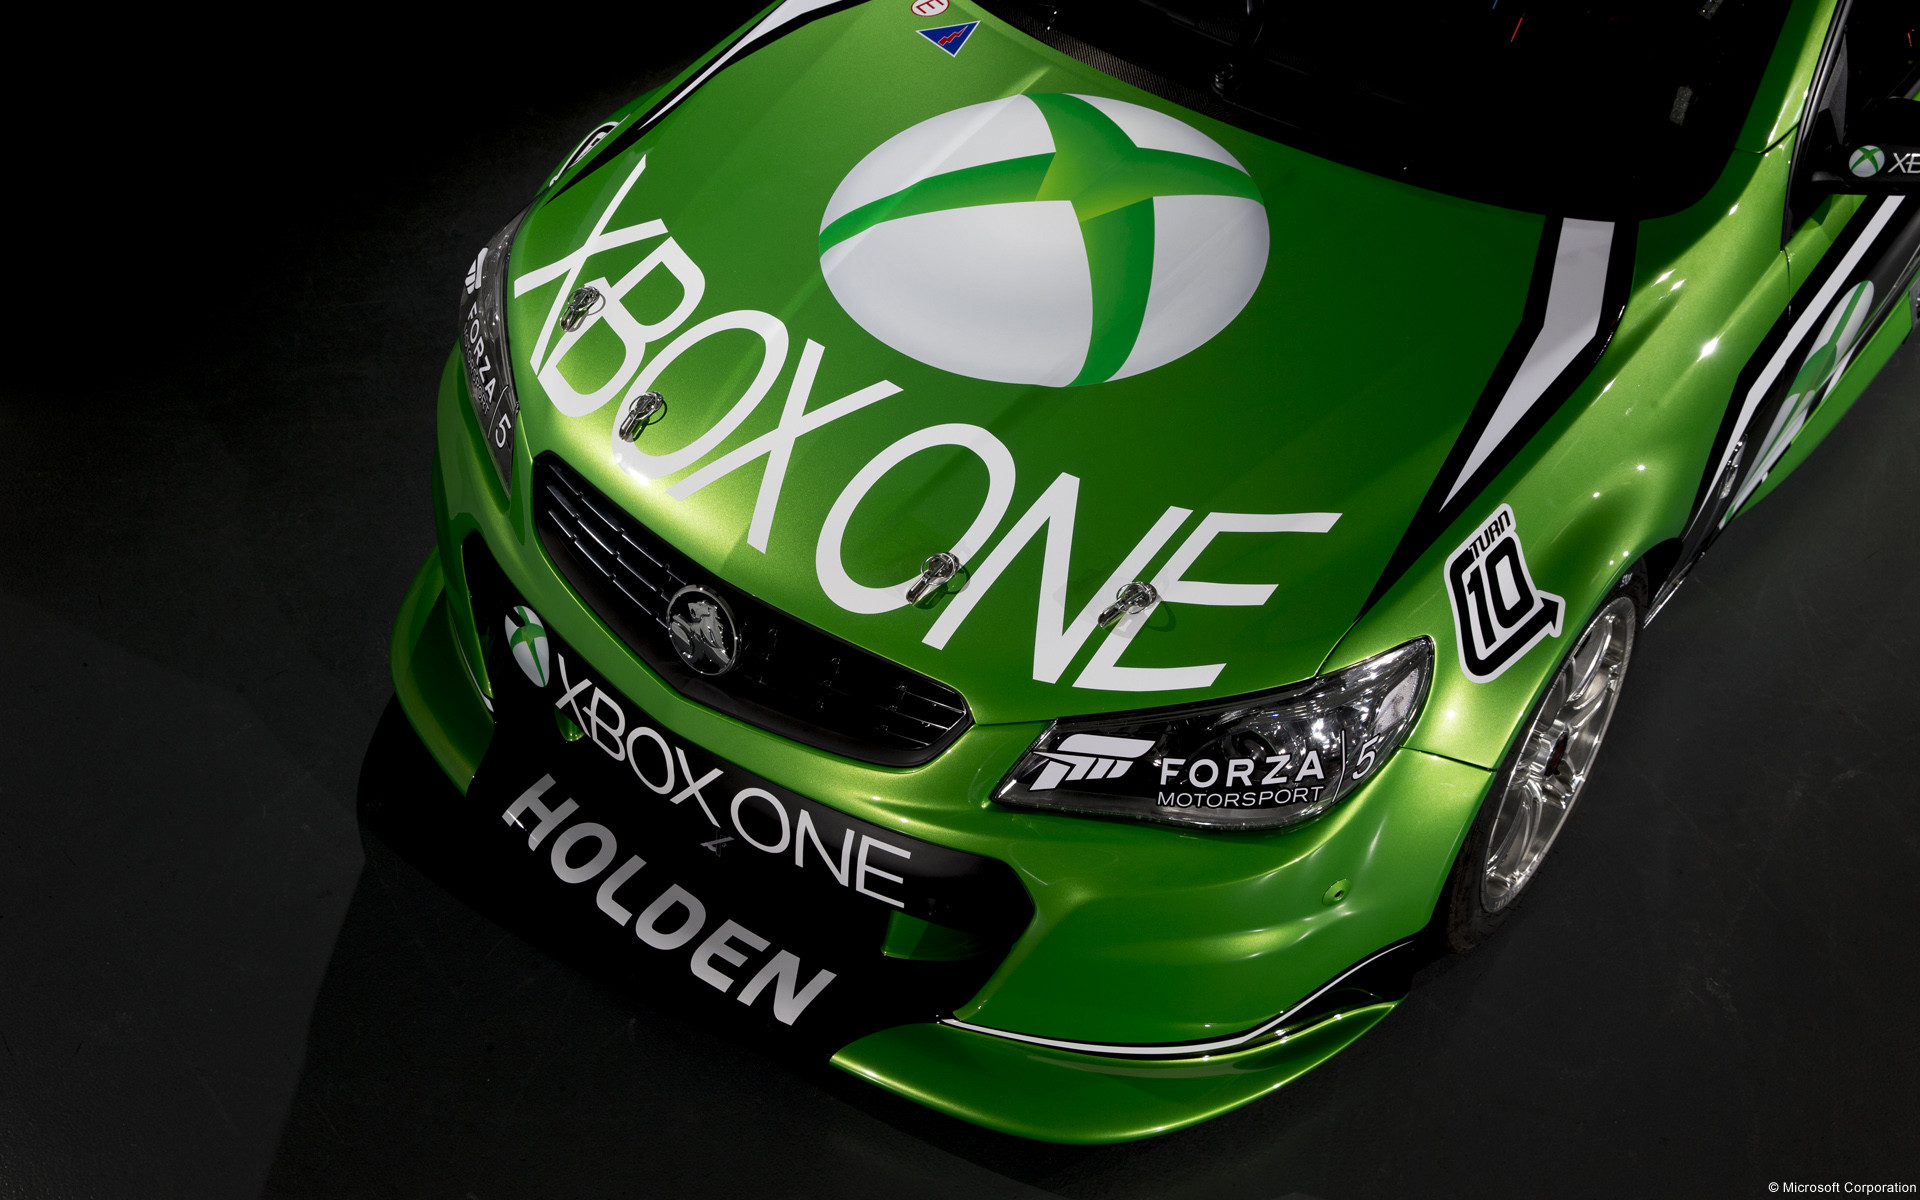 1920x1200 Video Game - Forza Motorsport 5 Xbox Race Car Bakgrund